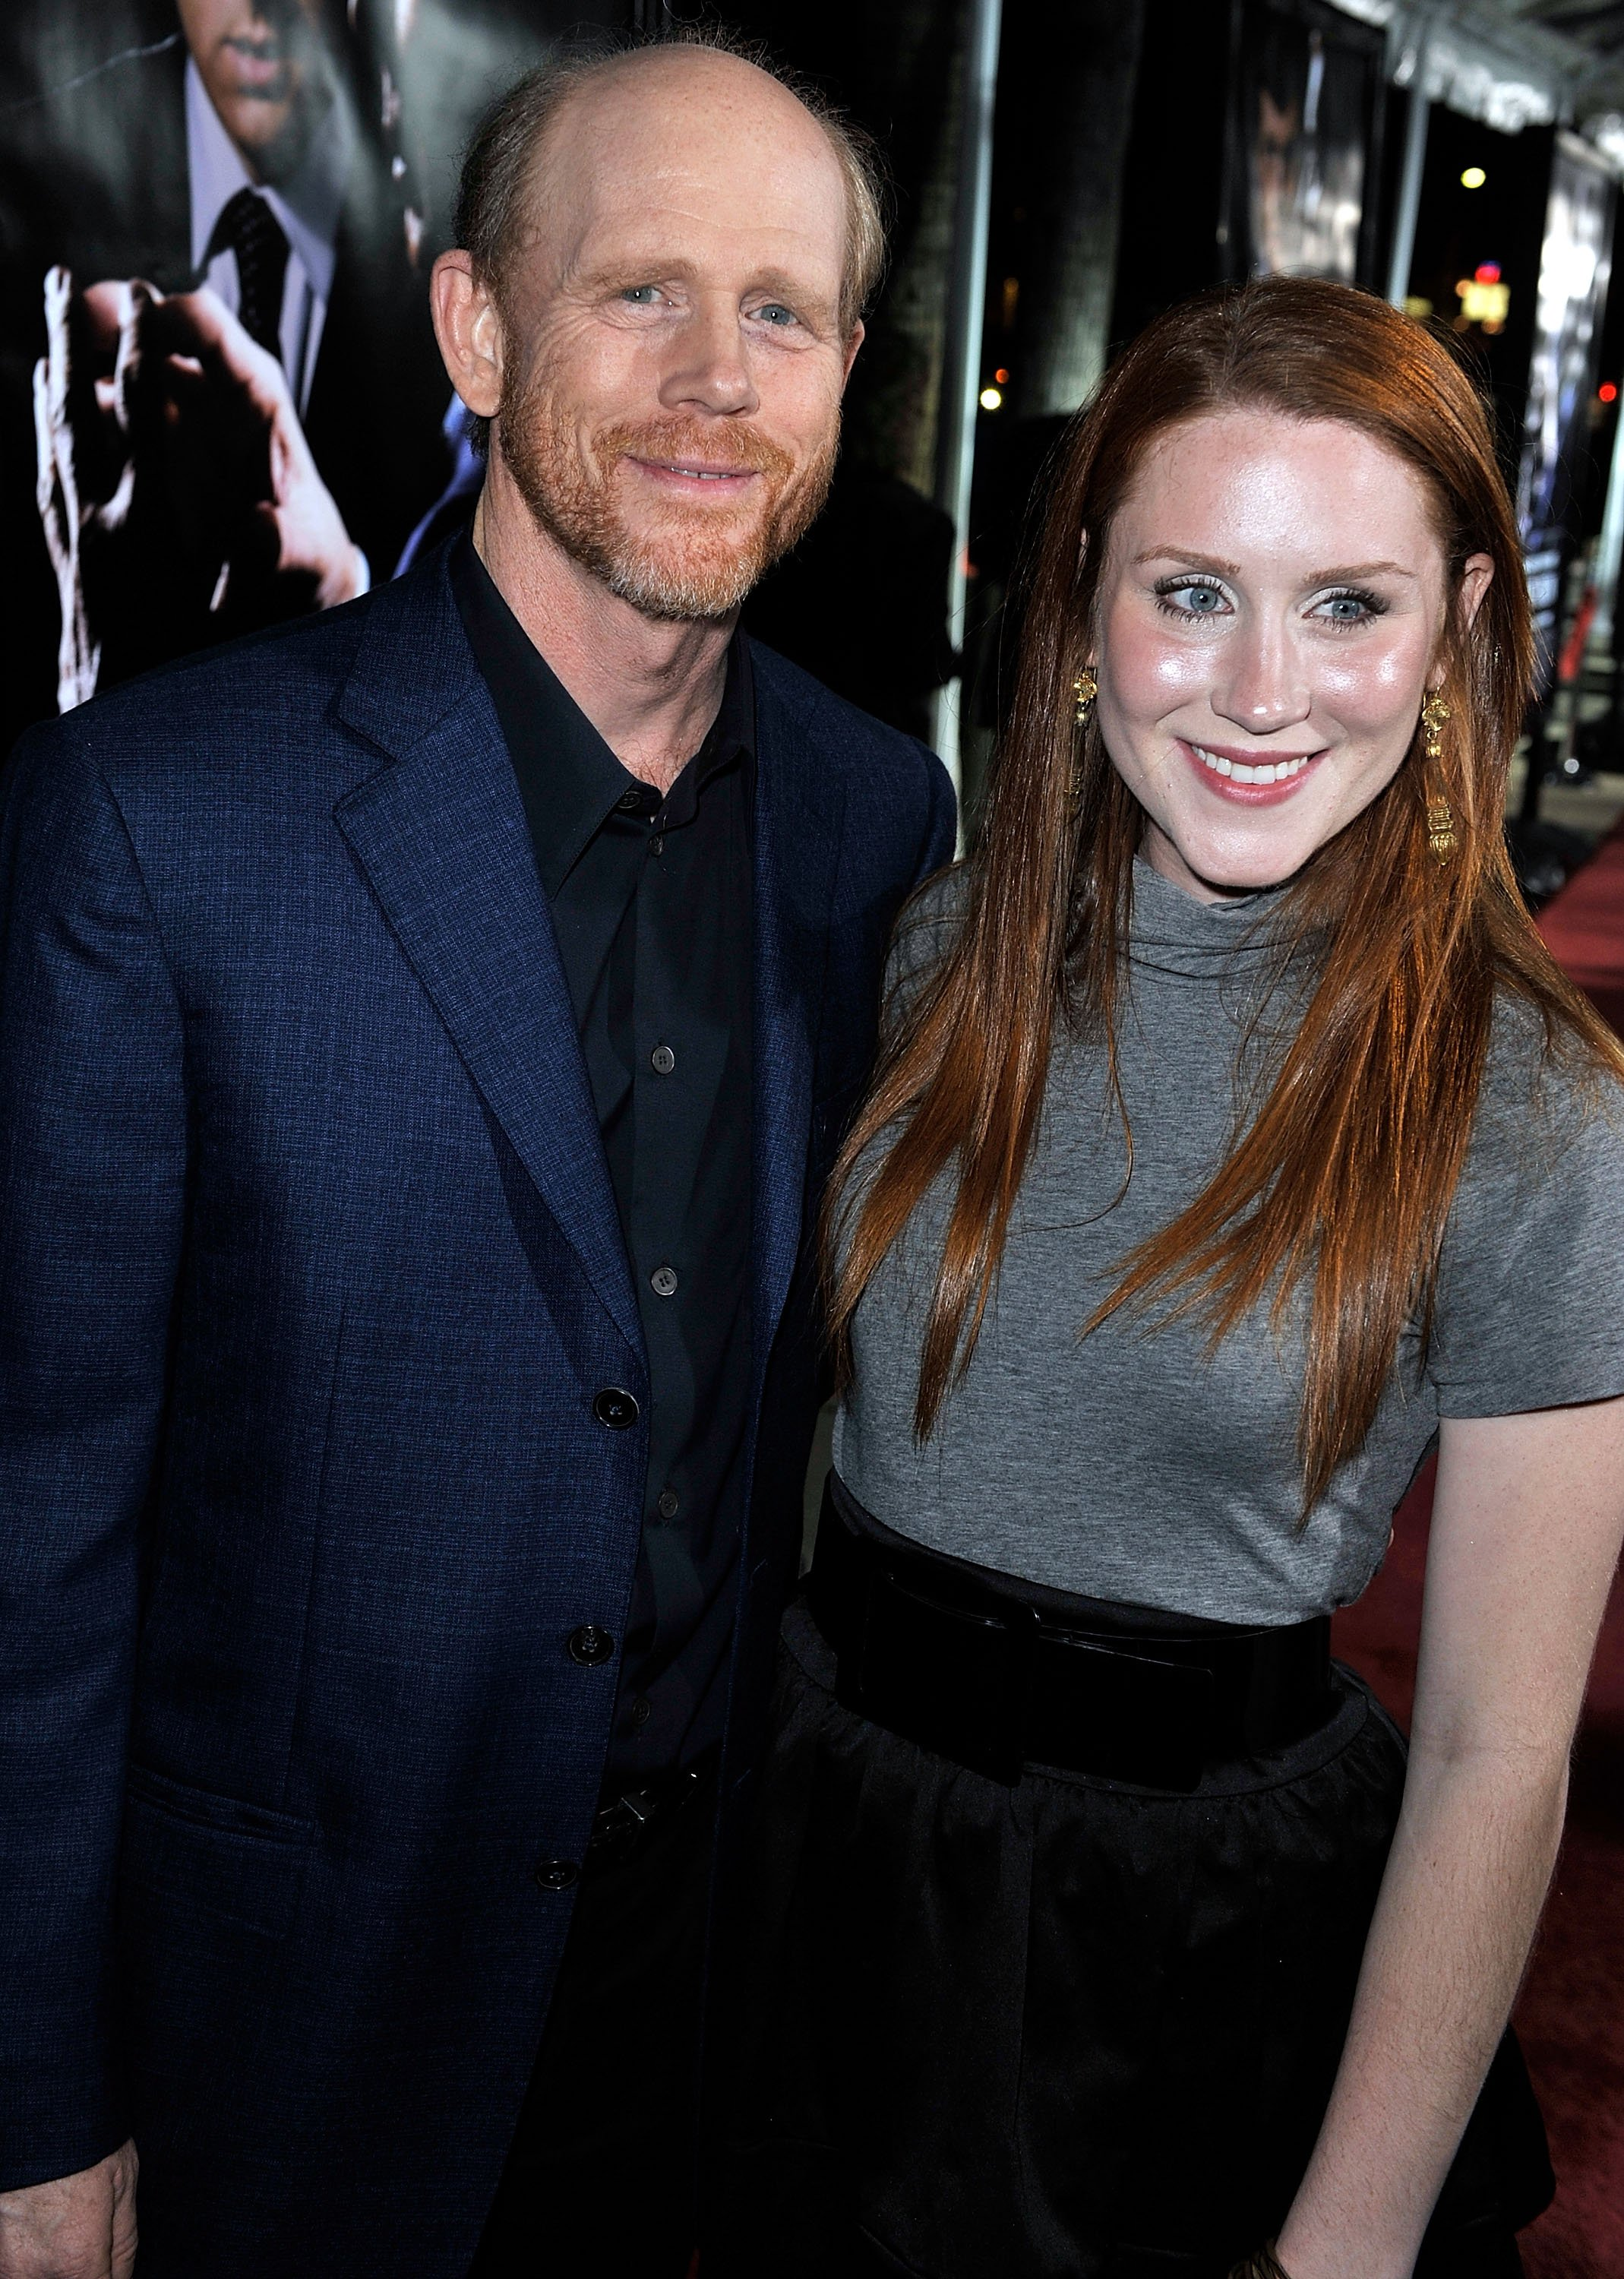 """Director Ron Howard (L) and his daughter Paige arrive at the premiere of Universal's """"Frost/Nixon"""" held at the Academy of Motion Picture Arts and Sciences' Samuel Goldwyn Theater on November 24, 2008 in Los Angeles, California.   Source: Getty Images"""